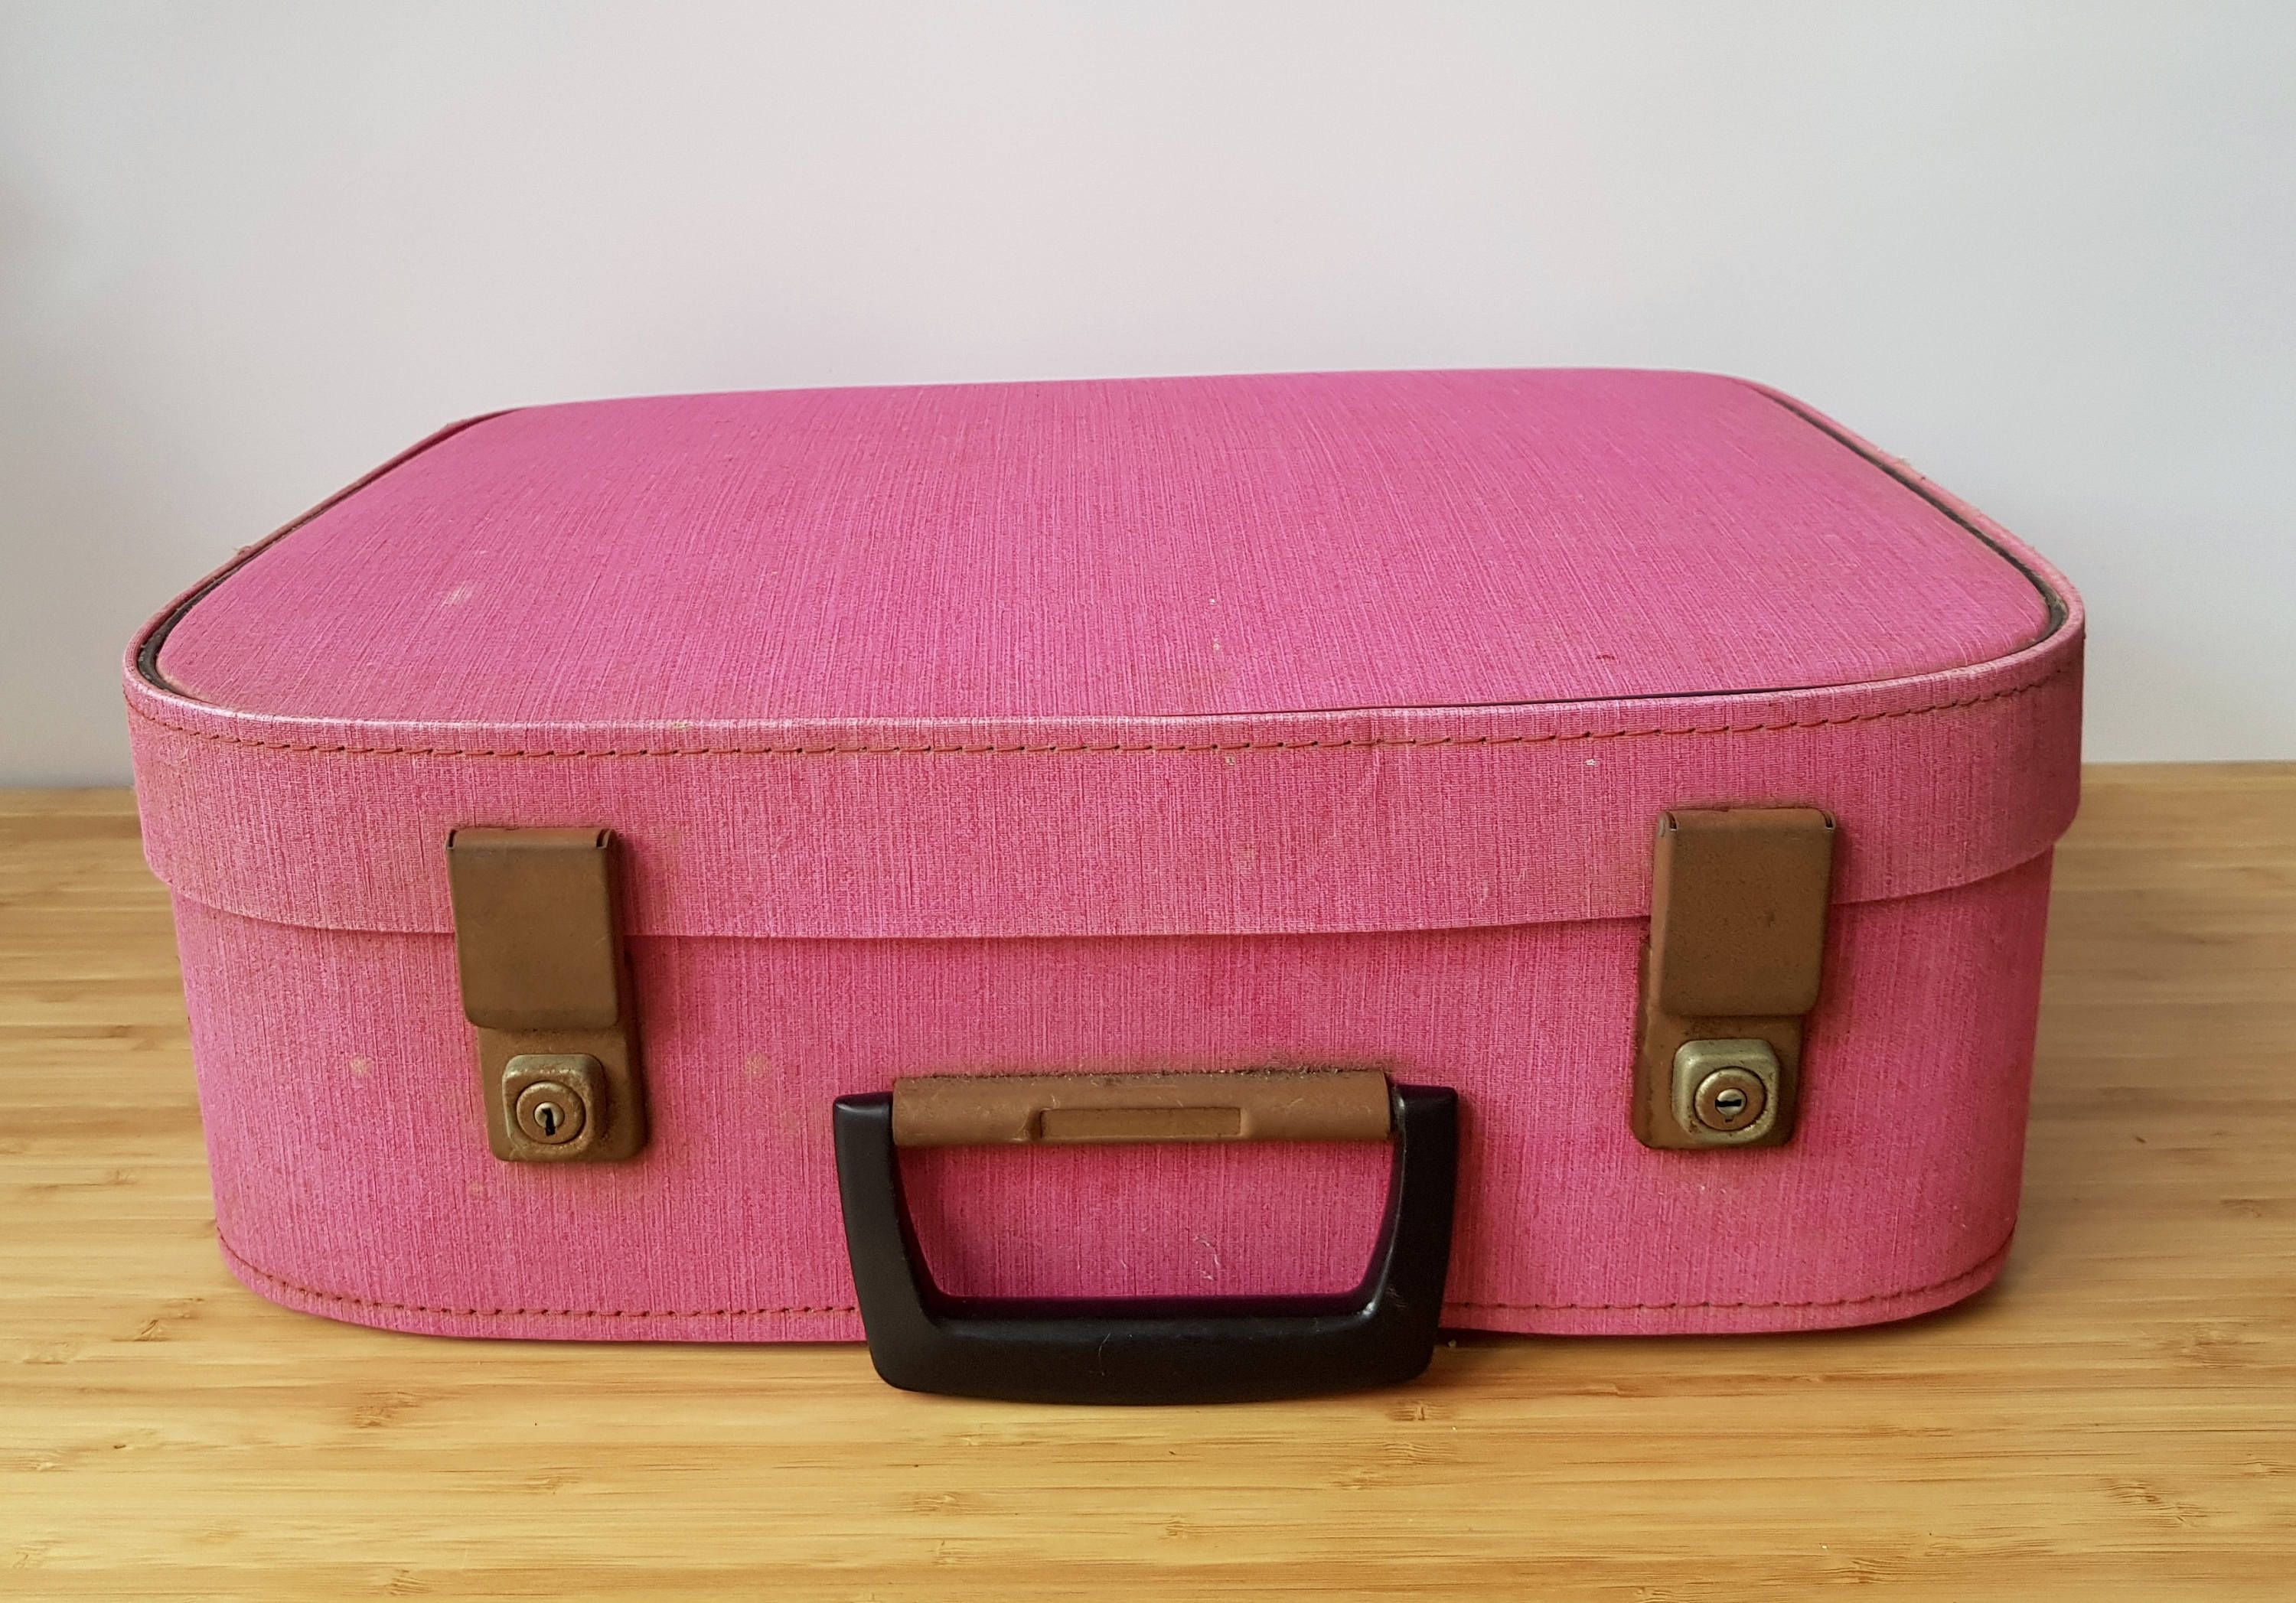 Vintage Pink Suitcase Vanity Case Lovely To Use For Storage